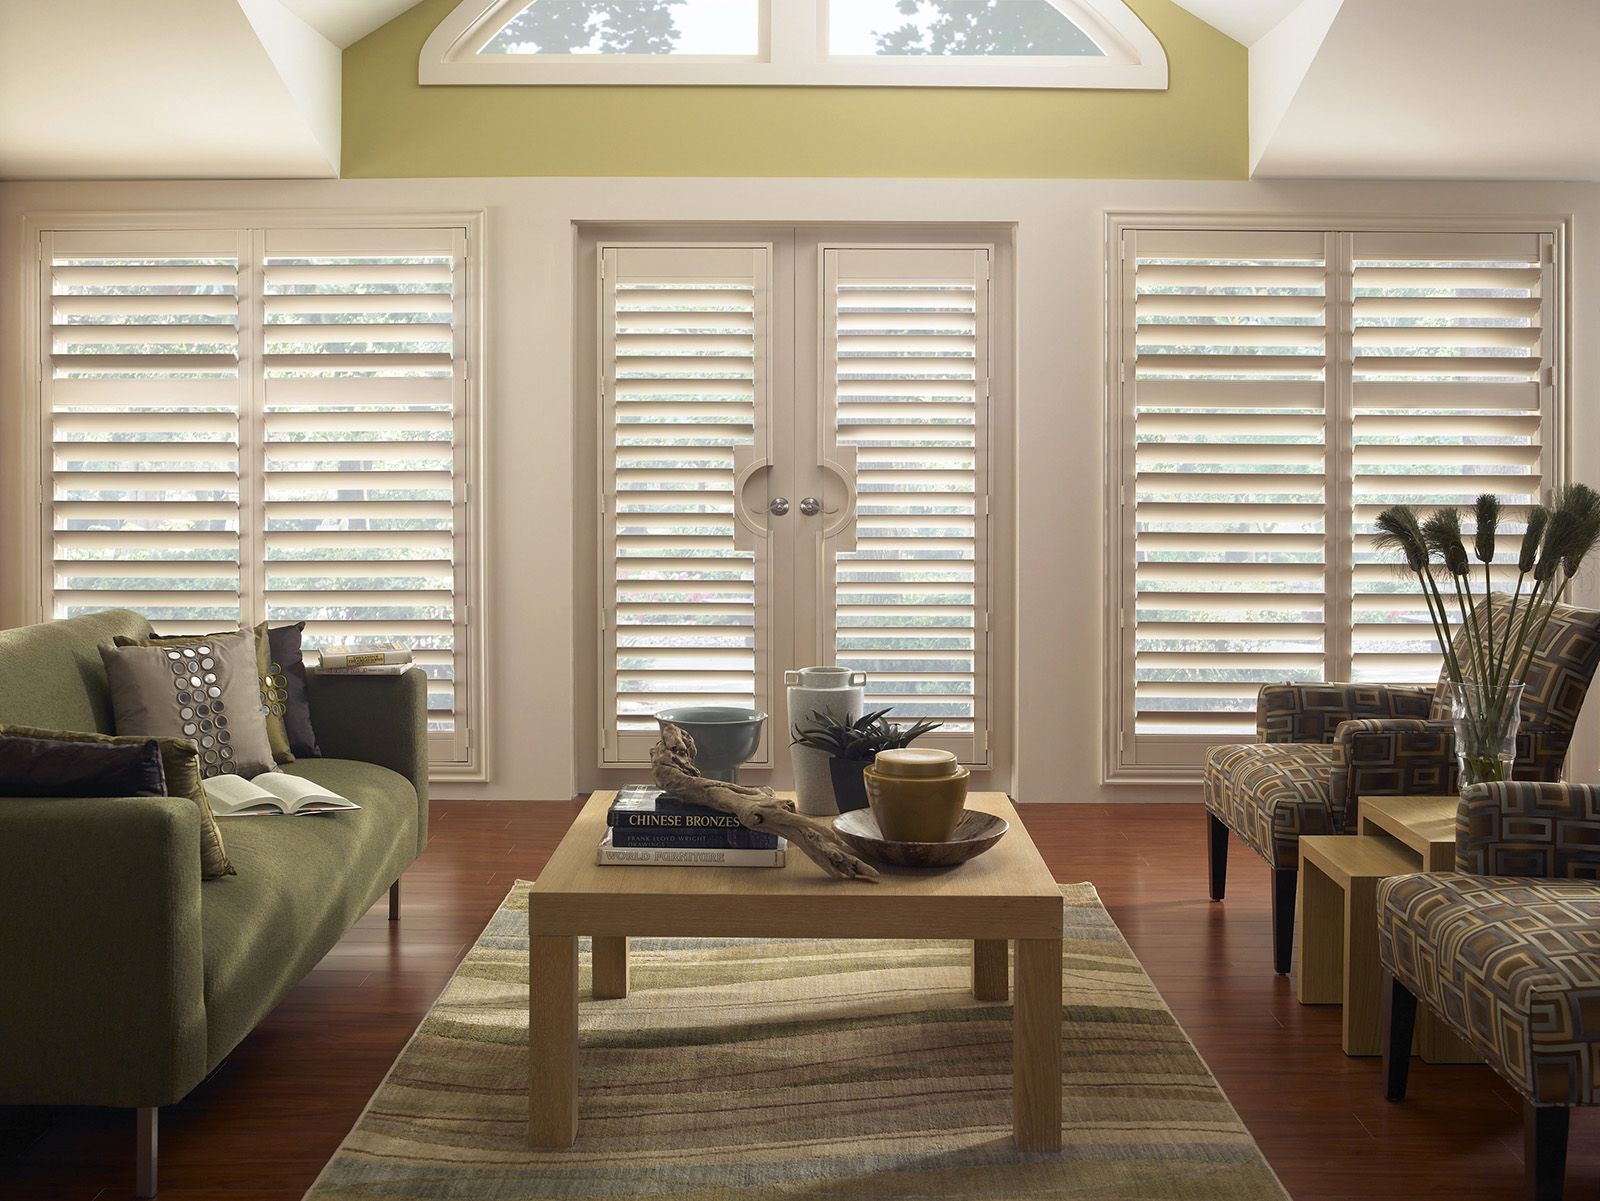 Vanilla • French Door Cut-out doors • 4½ inch louver • Deluxe Trim Frame • Divider Rail • UltraClearview® hidden rear tilt